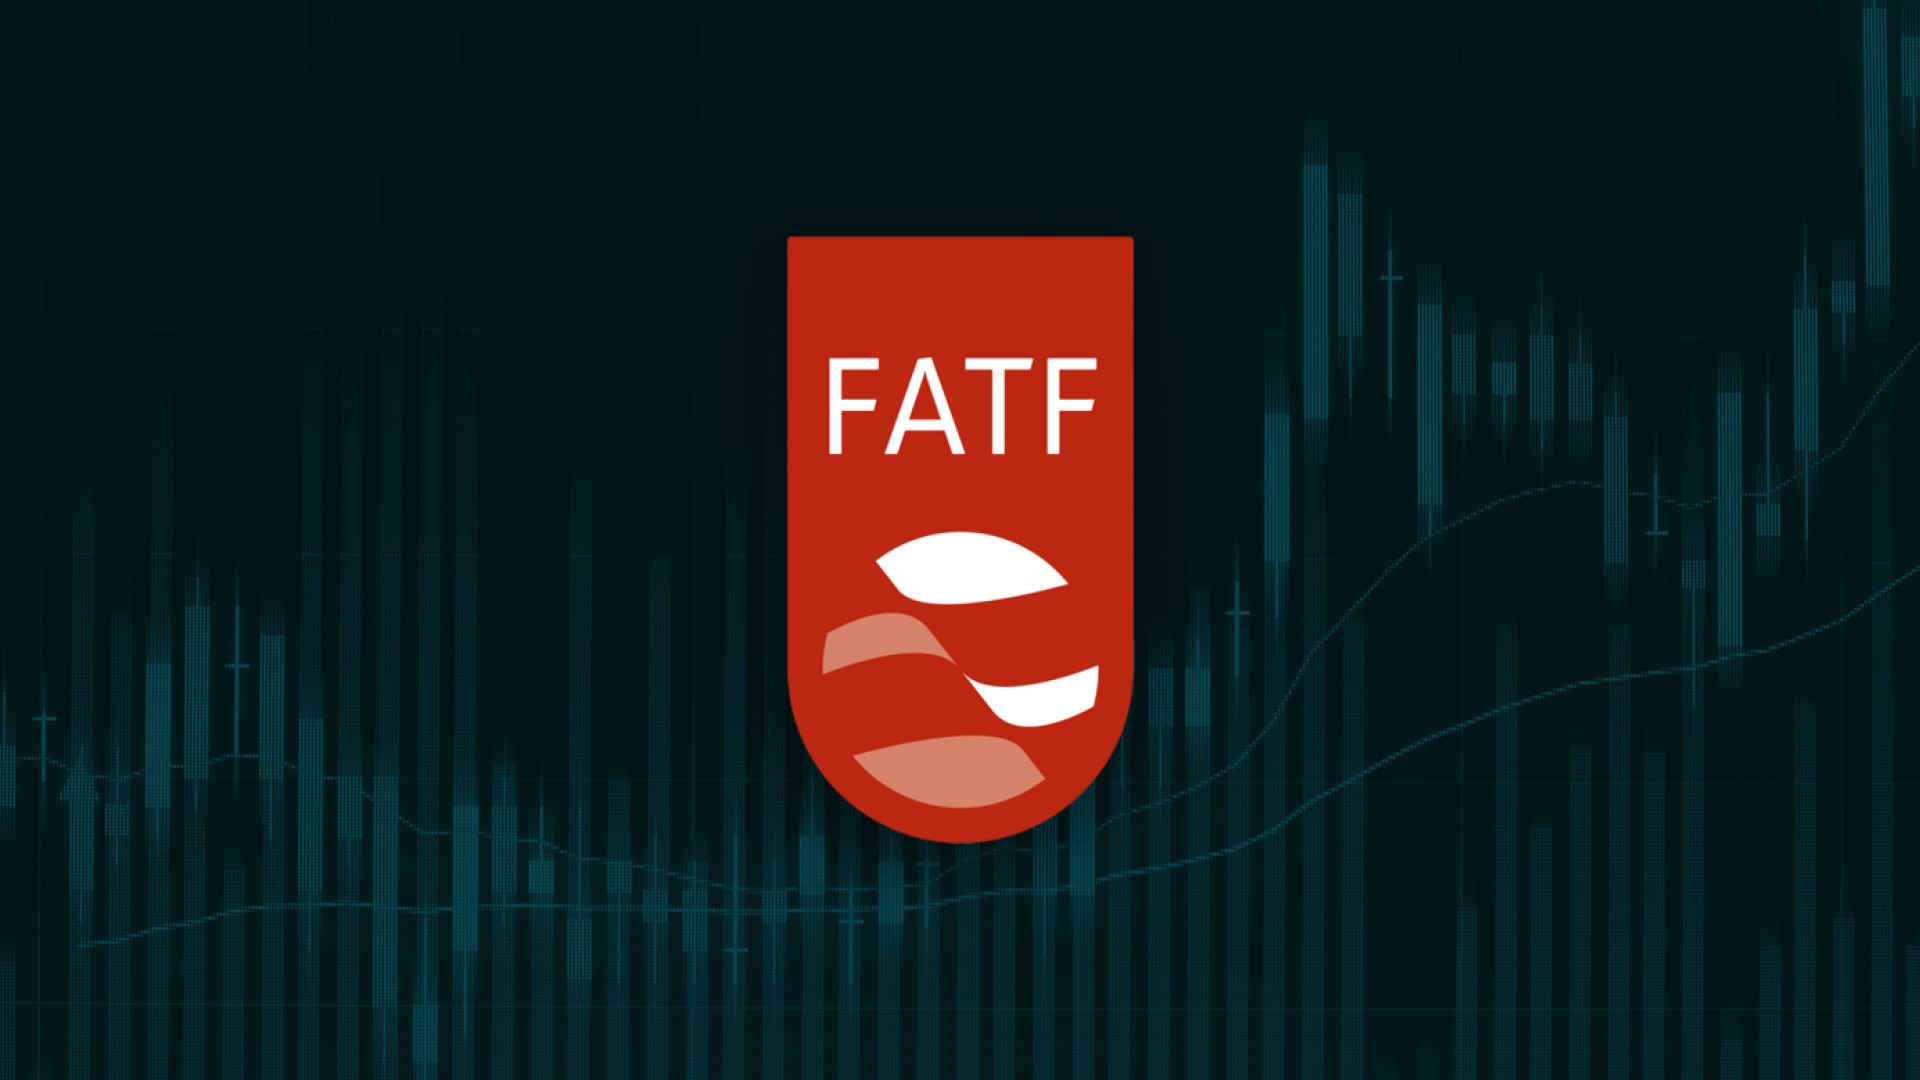 FATF says it will release updated guidance for digital assets in June